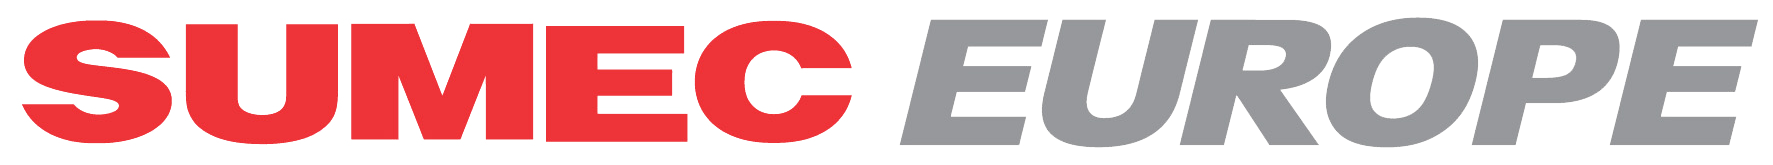 Logo SUMEC EUROPE | bereits sicher dank IT-Guard